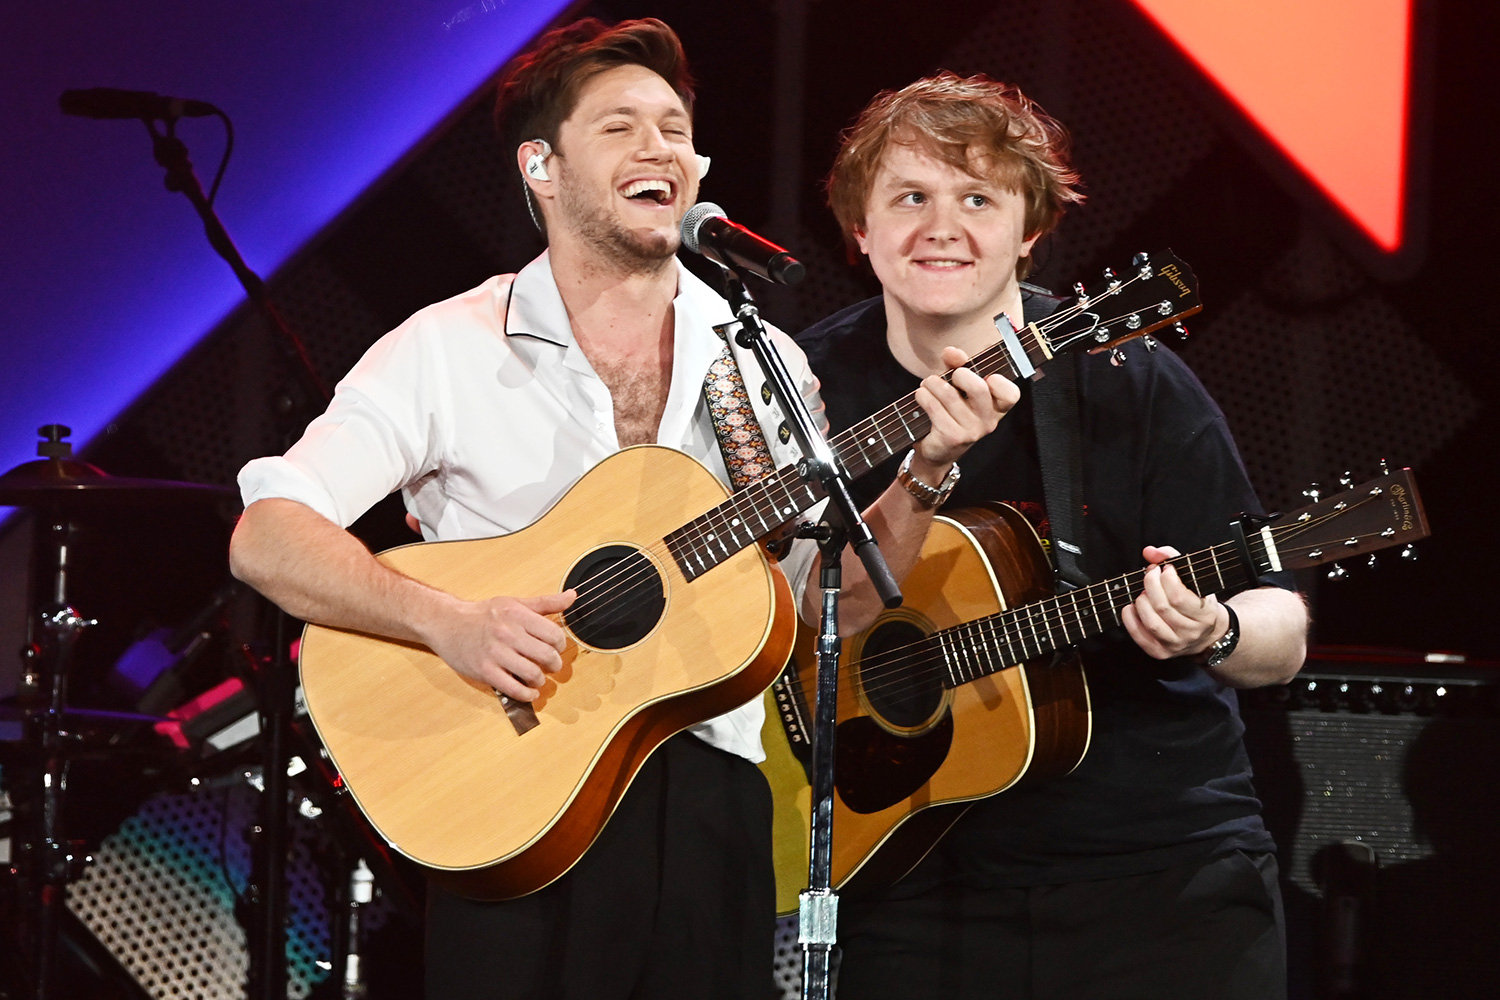 Niall Horan and Lewis Capaldi perform during 103.5 KISS FM's Jingle Ball 2019 - Show on December 18, 2019 in Chicago, Illinois